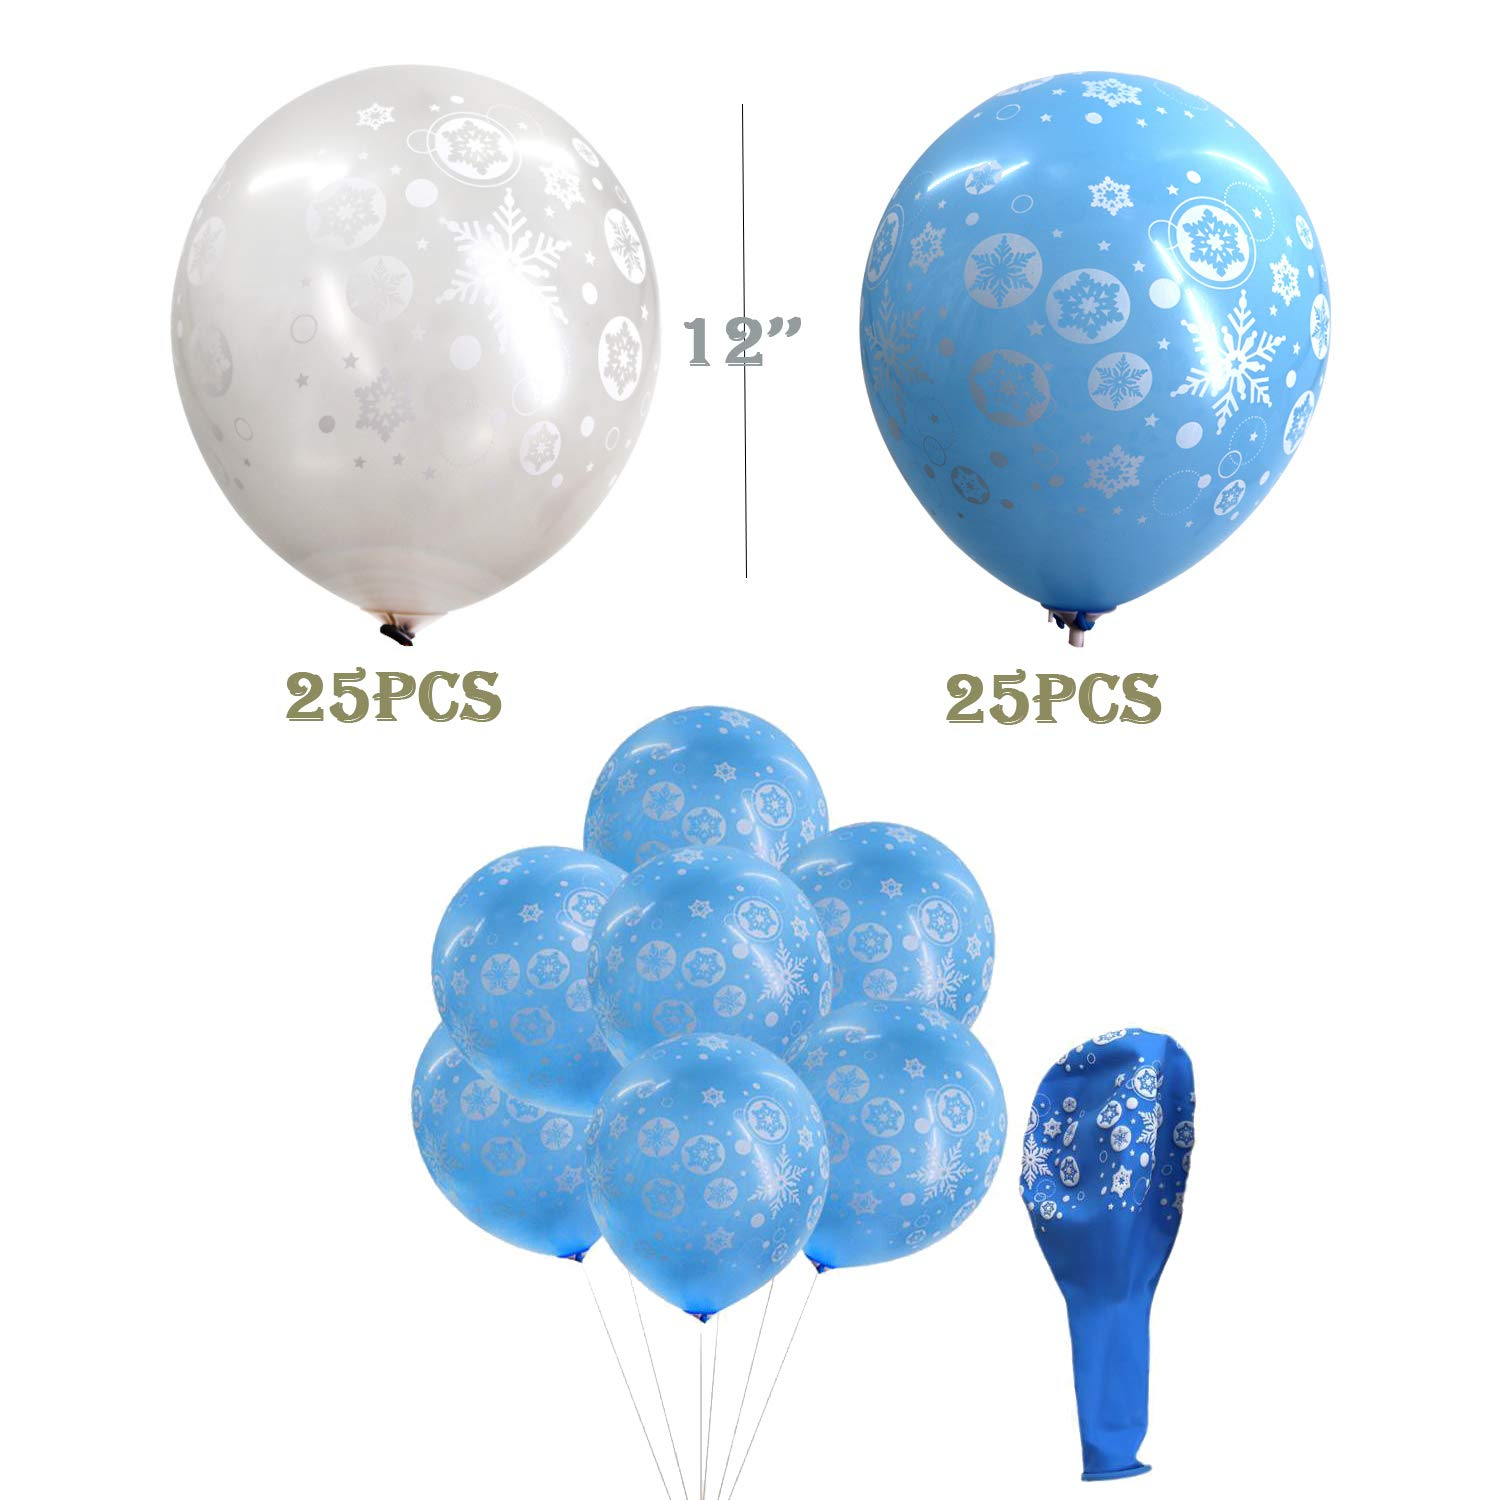 Christmas Balloons Snowflakes 50 Pieces Latex Balloons Winter Theme Balloons Baby Shower Birthday Christmas Party Decoration 12 inches Gray /& Blue